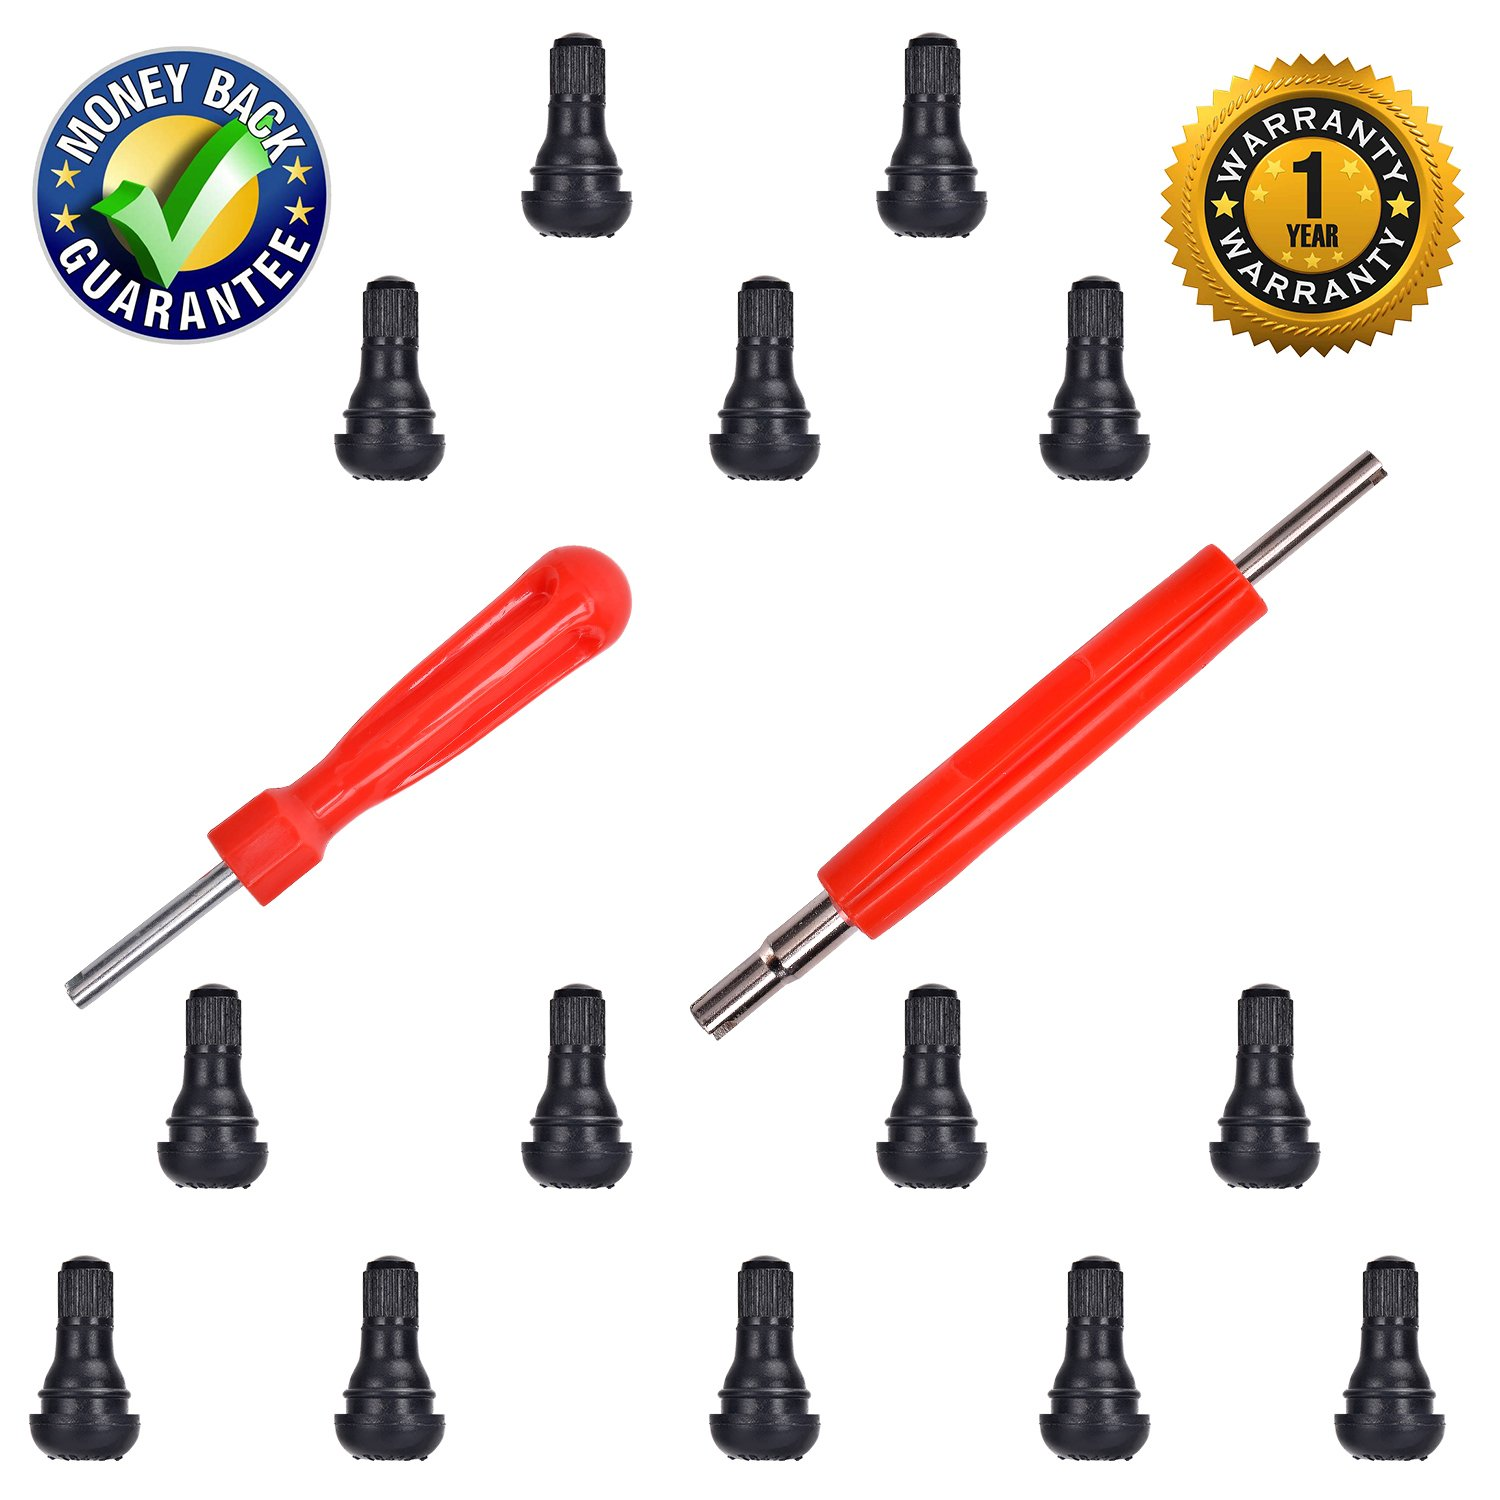 """DCFlat Snap-in Short Black Rubber Valve Stem (TR412) 14-Pack for Tubeless 0.453"""" Inch 11.5mm Rim Holes on Standard Vehicle Tires and 2 in 1 Set Dual Single Head Valve"""